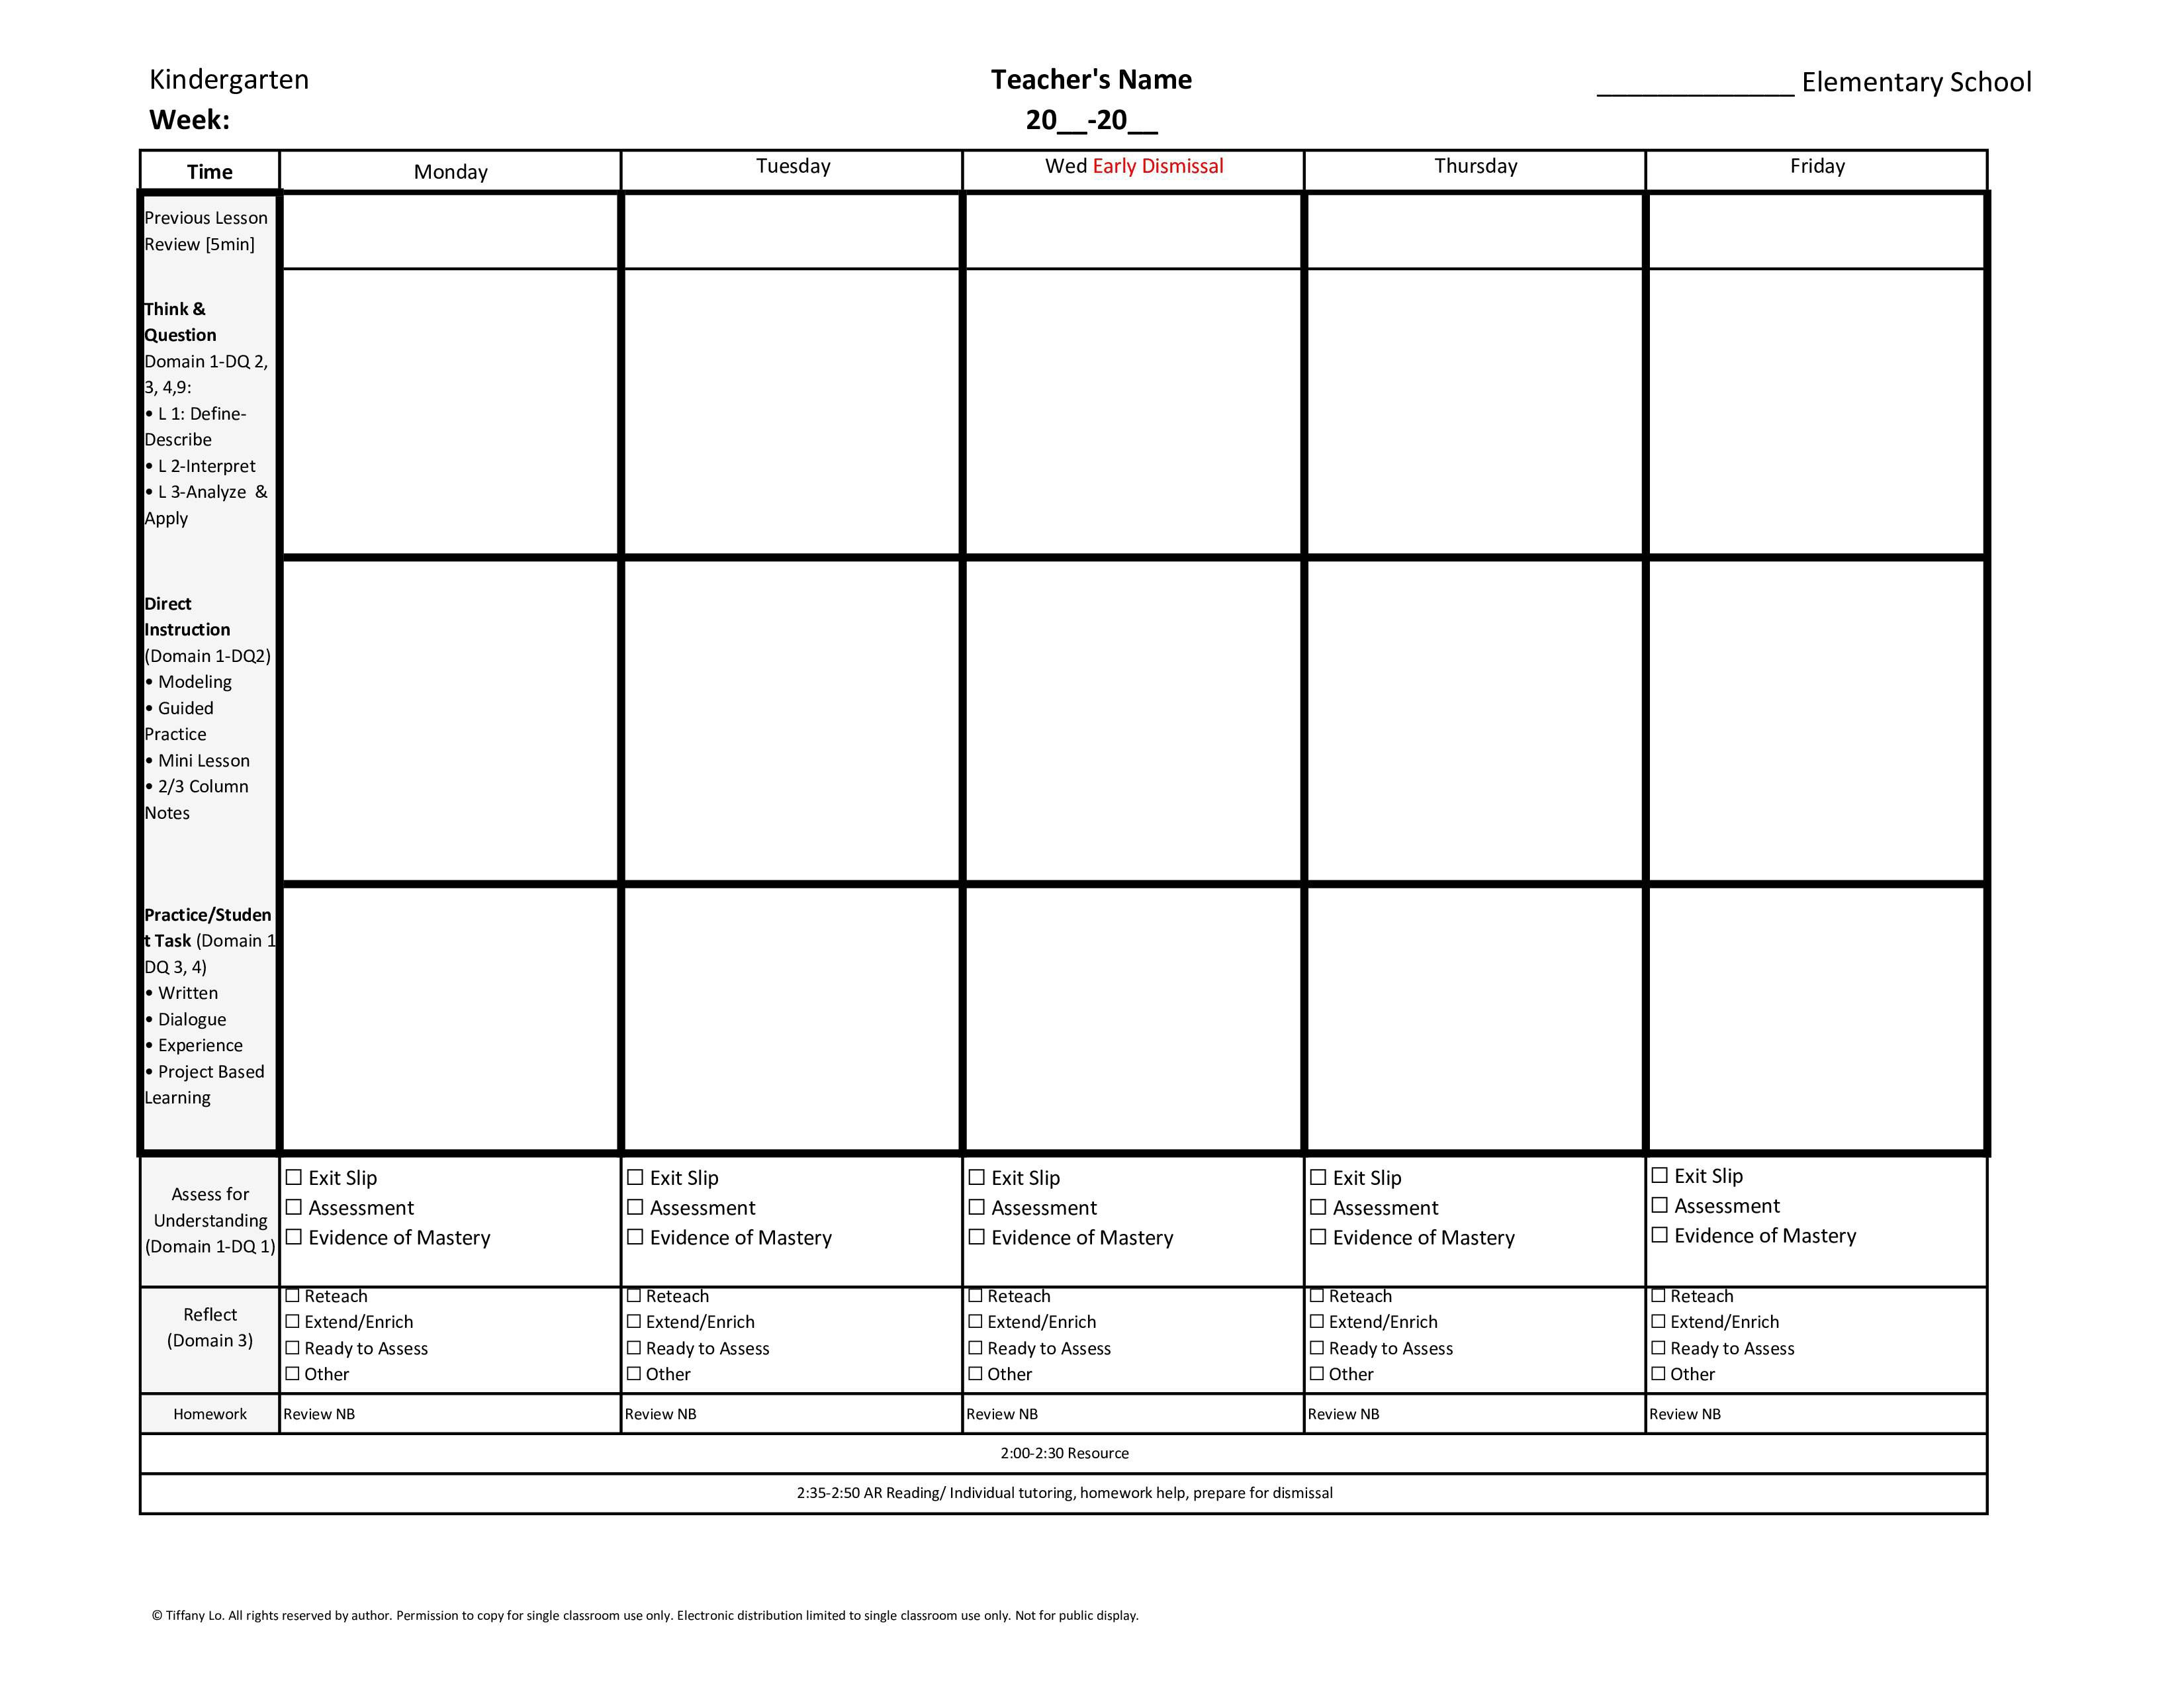 006 Unique Weekly Lesson Plan Template Inspiration  Blank Free High School Danielson Google DocFull